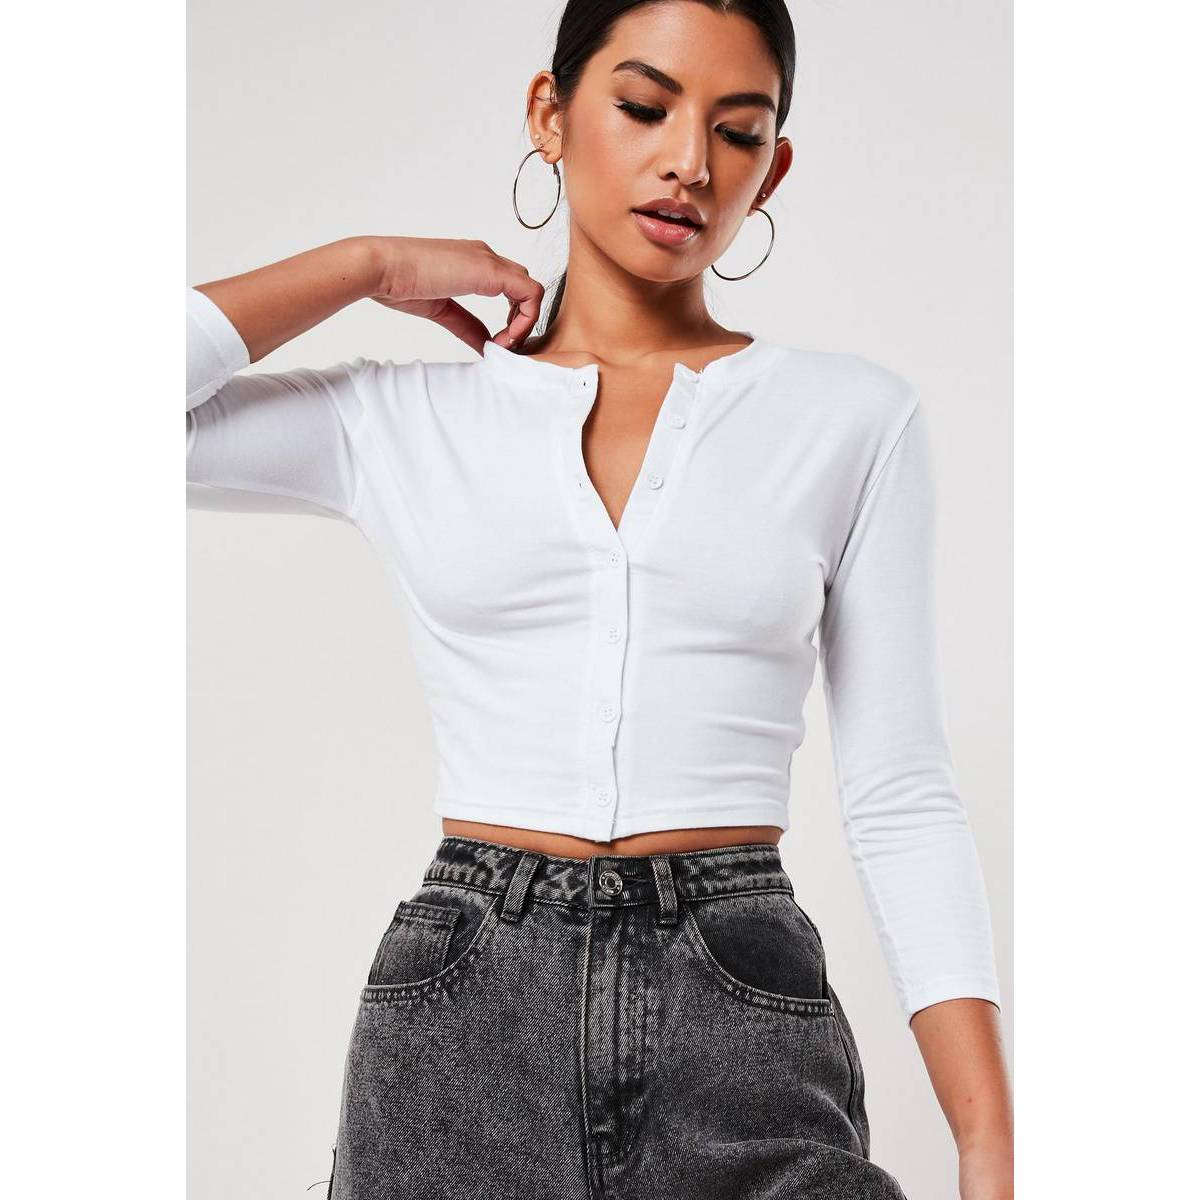 White Long Sleeves Button Front Crop Top For Women Xe-01